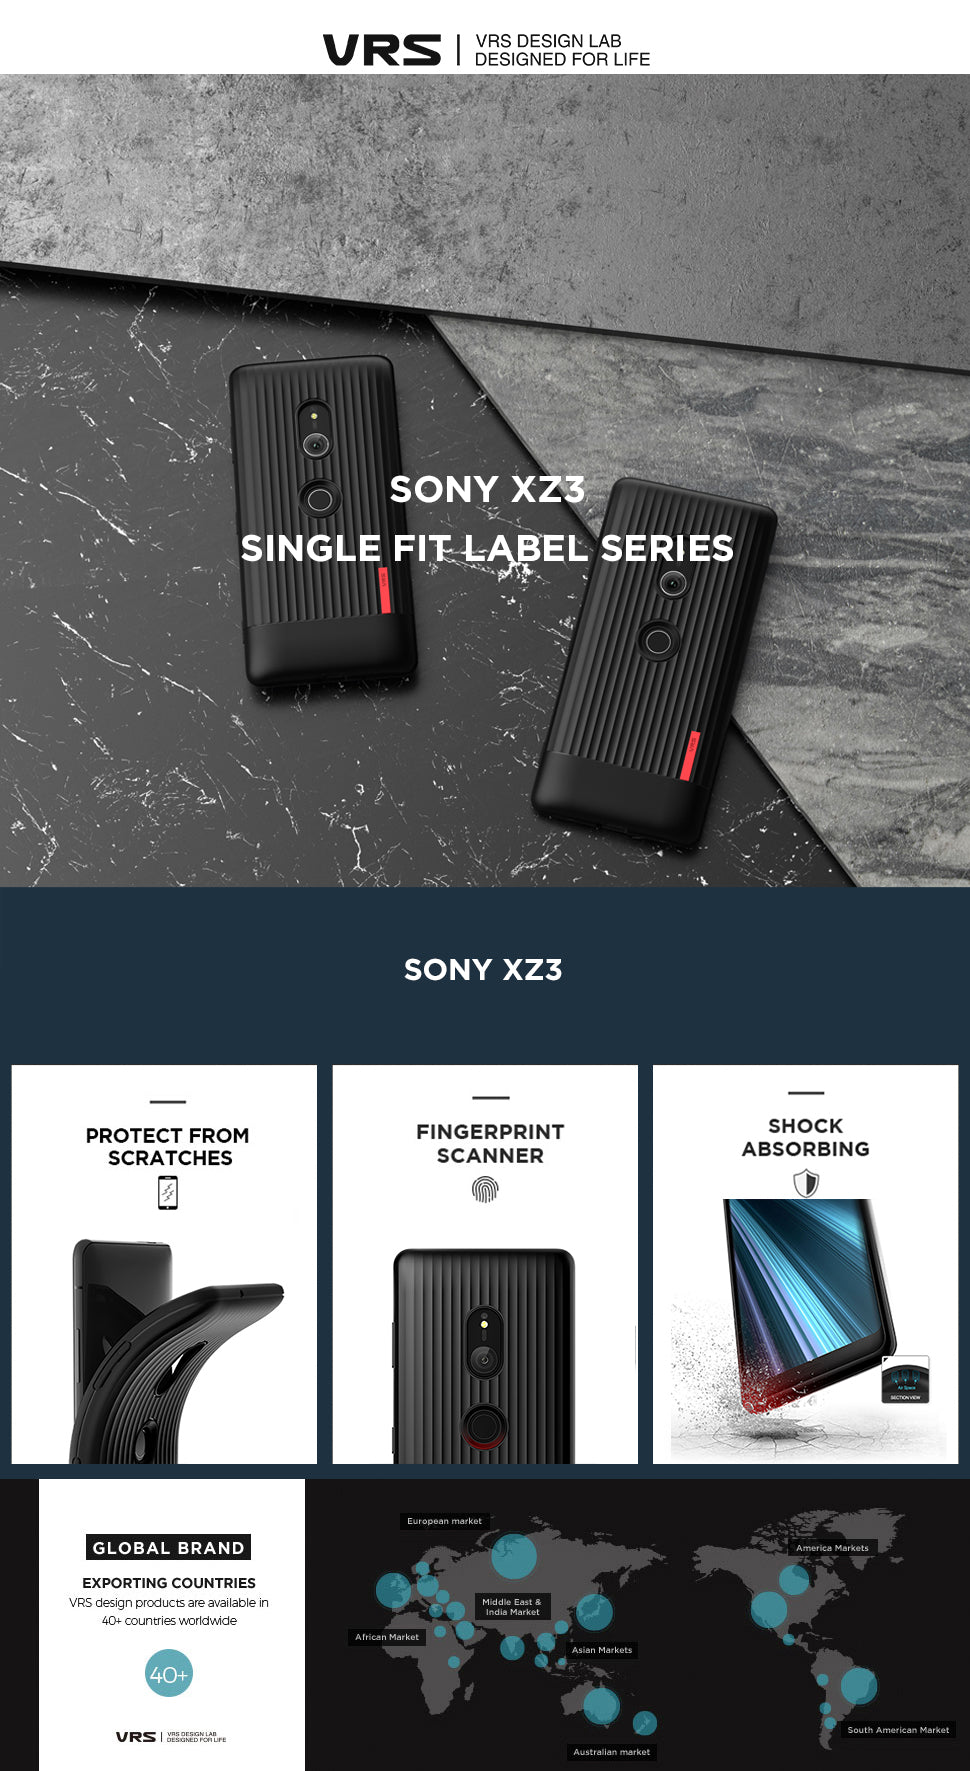 Best Clear Case for Sony XZ 3 Single Fit Label Series From VRS Design